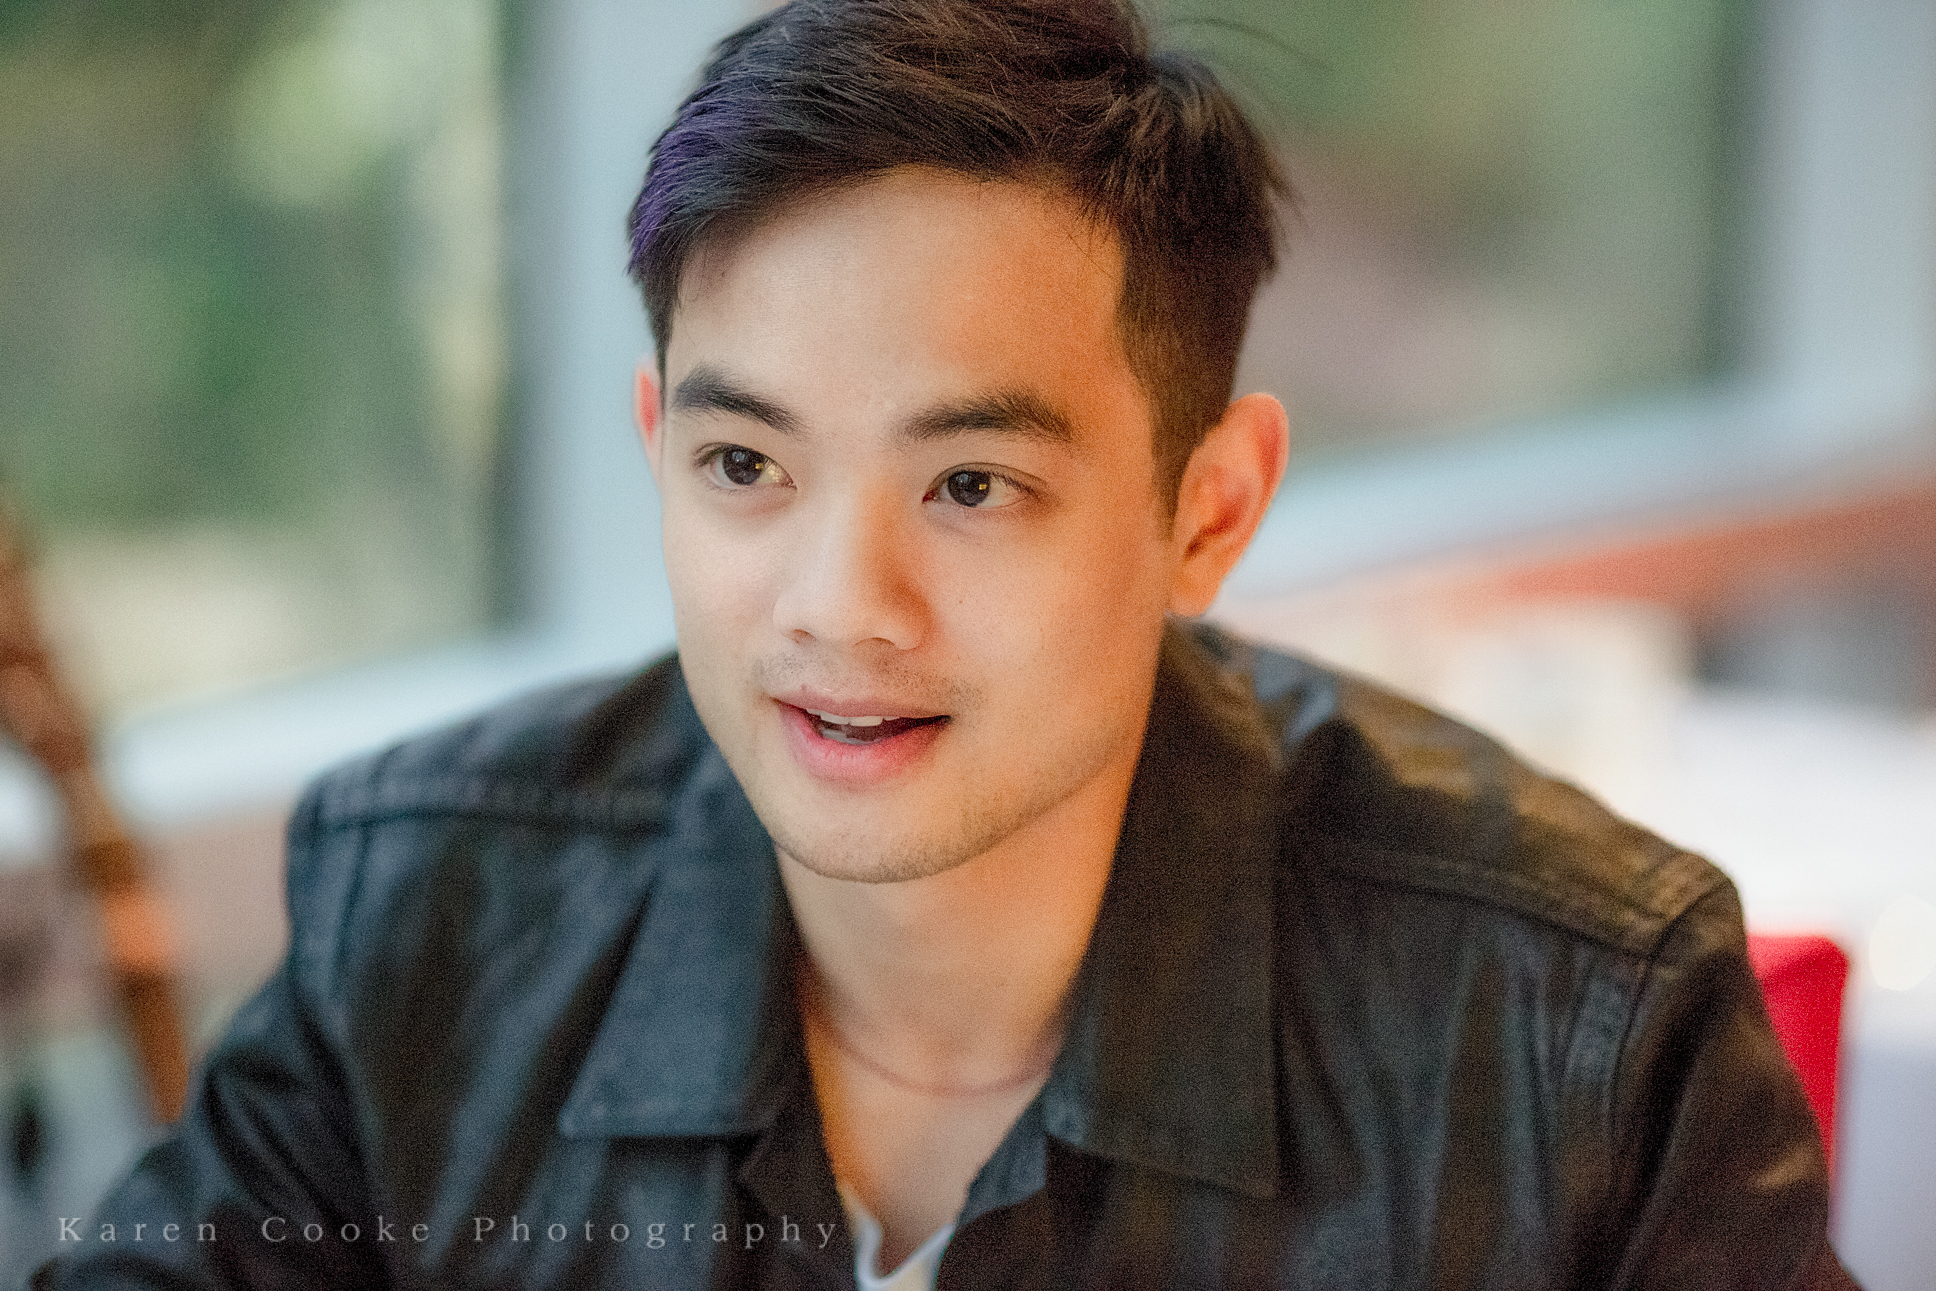 osric chau imdbosric chau dress, osric chau 2016, osric chau instagram, osric chau height, osric chau twitter, osric chau interview, osric chau, osric chau snapchat, osric chau supernatural, osric chau cosplay, osric chau imdb, osric chau tumblr, osric chau wiki, osric chau shirtless, osric chau vine, osric chau facebook, osric chau martial arts, osric chau sleeping dogs, osric chau comic con, osric chau the 100